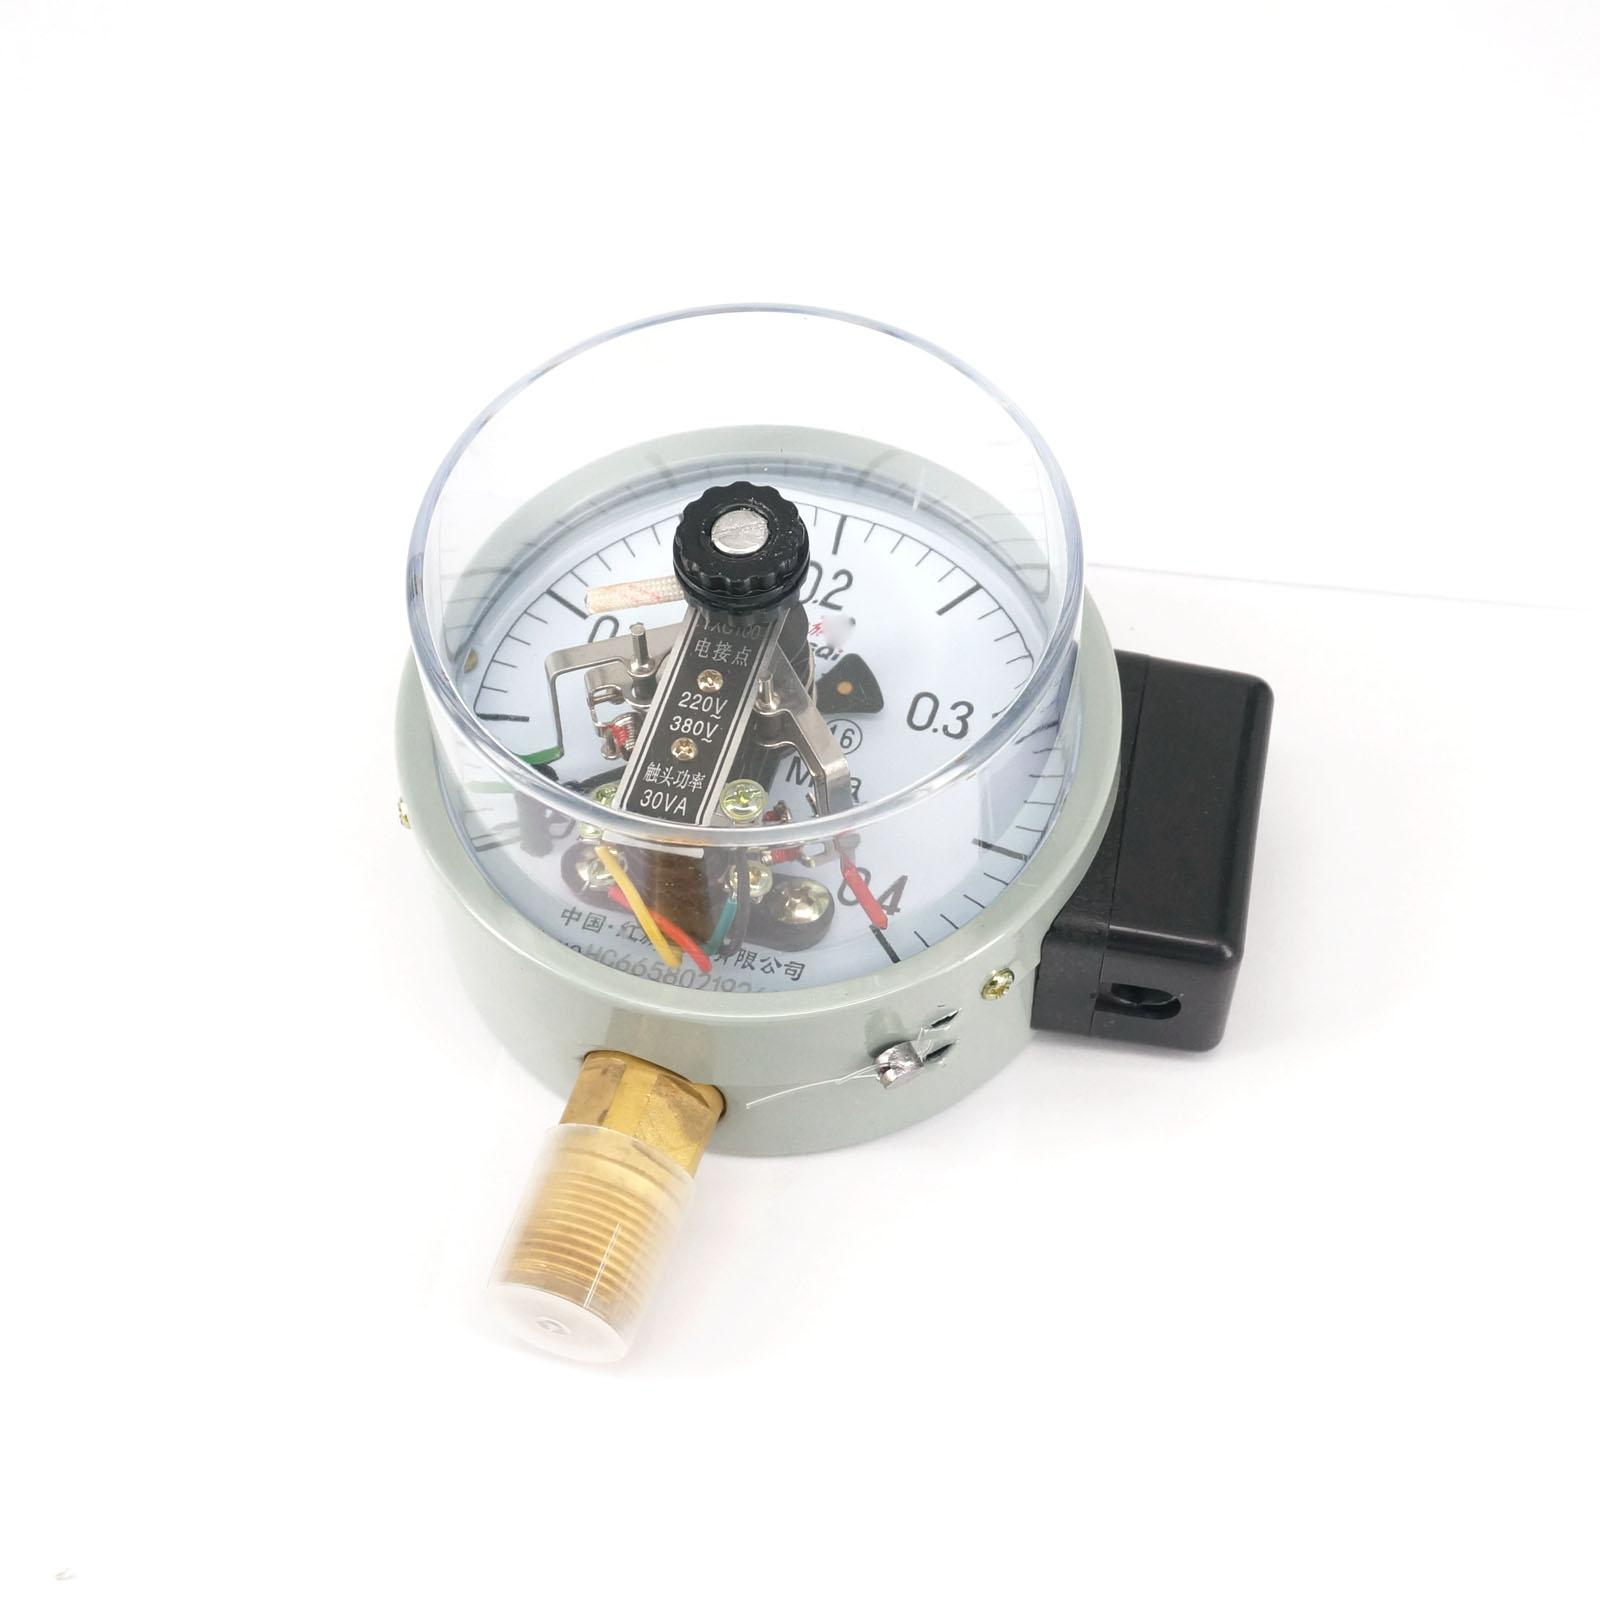 0-0.4Mpa YXC Dial Diameter 100mm Magnetic Auxiliary Electric Contact Pressure Gauge Radial Mount Pneumatic Parts y 150 150mm radial mount 0 1 25mpa air compressor pressure gauge dial diam pneumatic